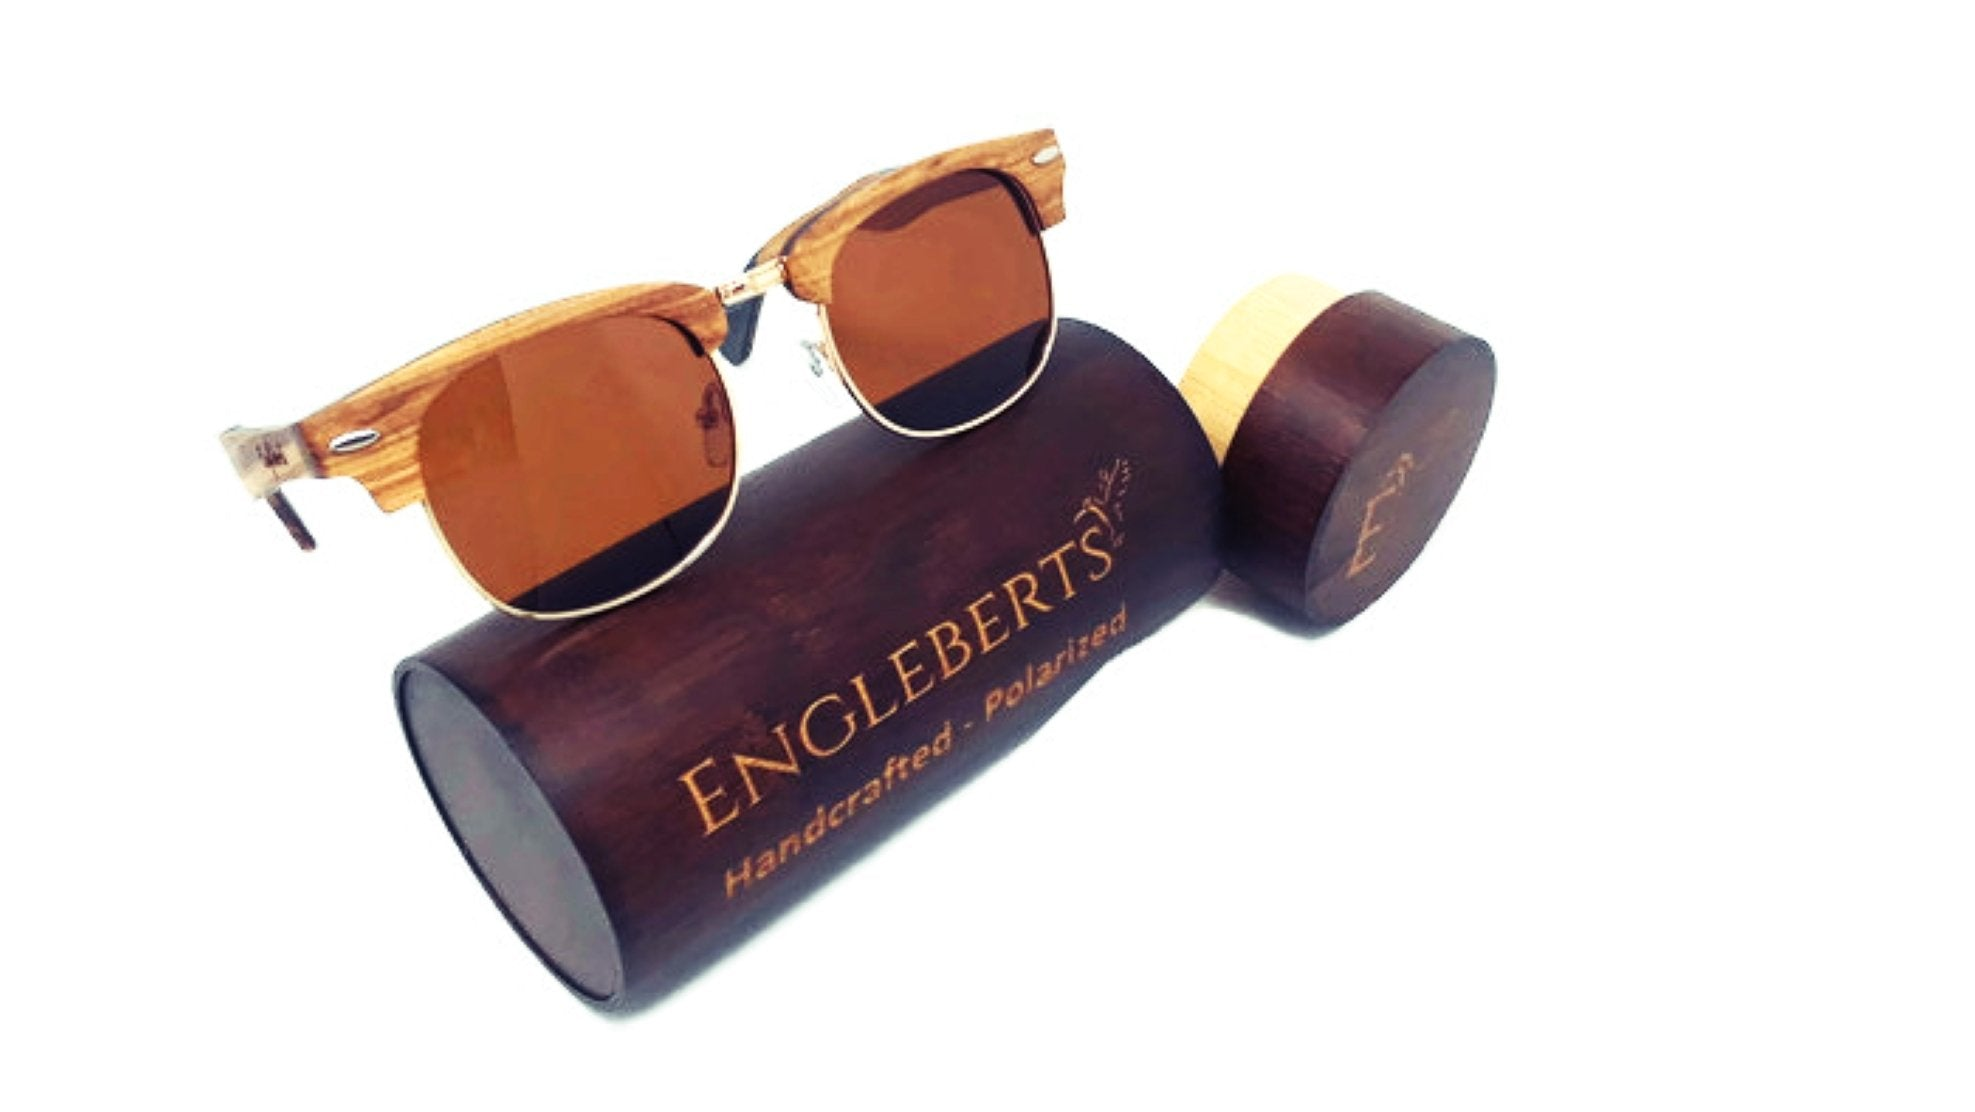 Real Ebony and ZebraWood Sunglasses With Wood Case-AcDrift